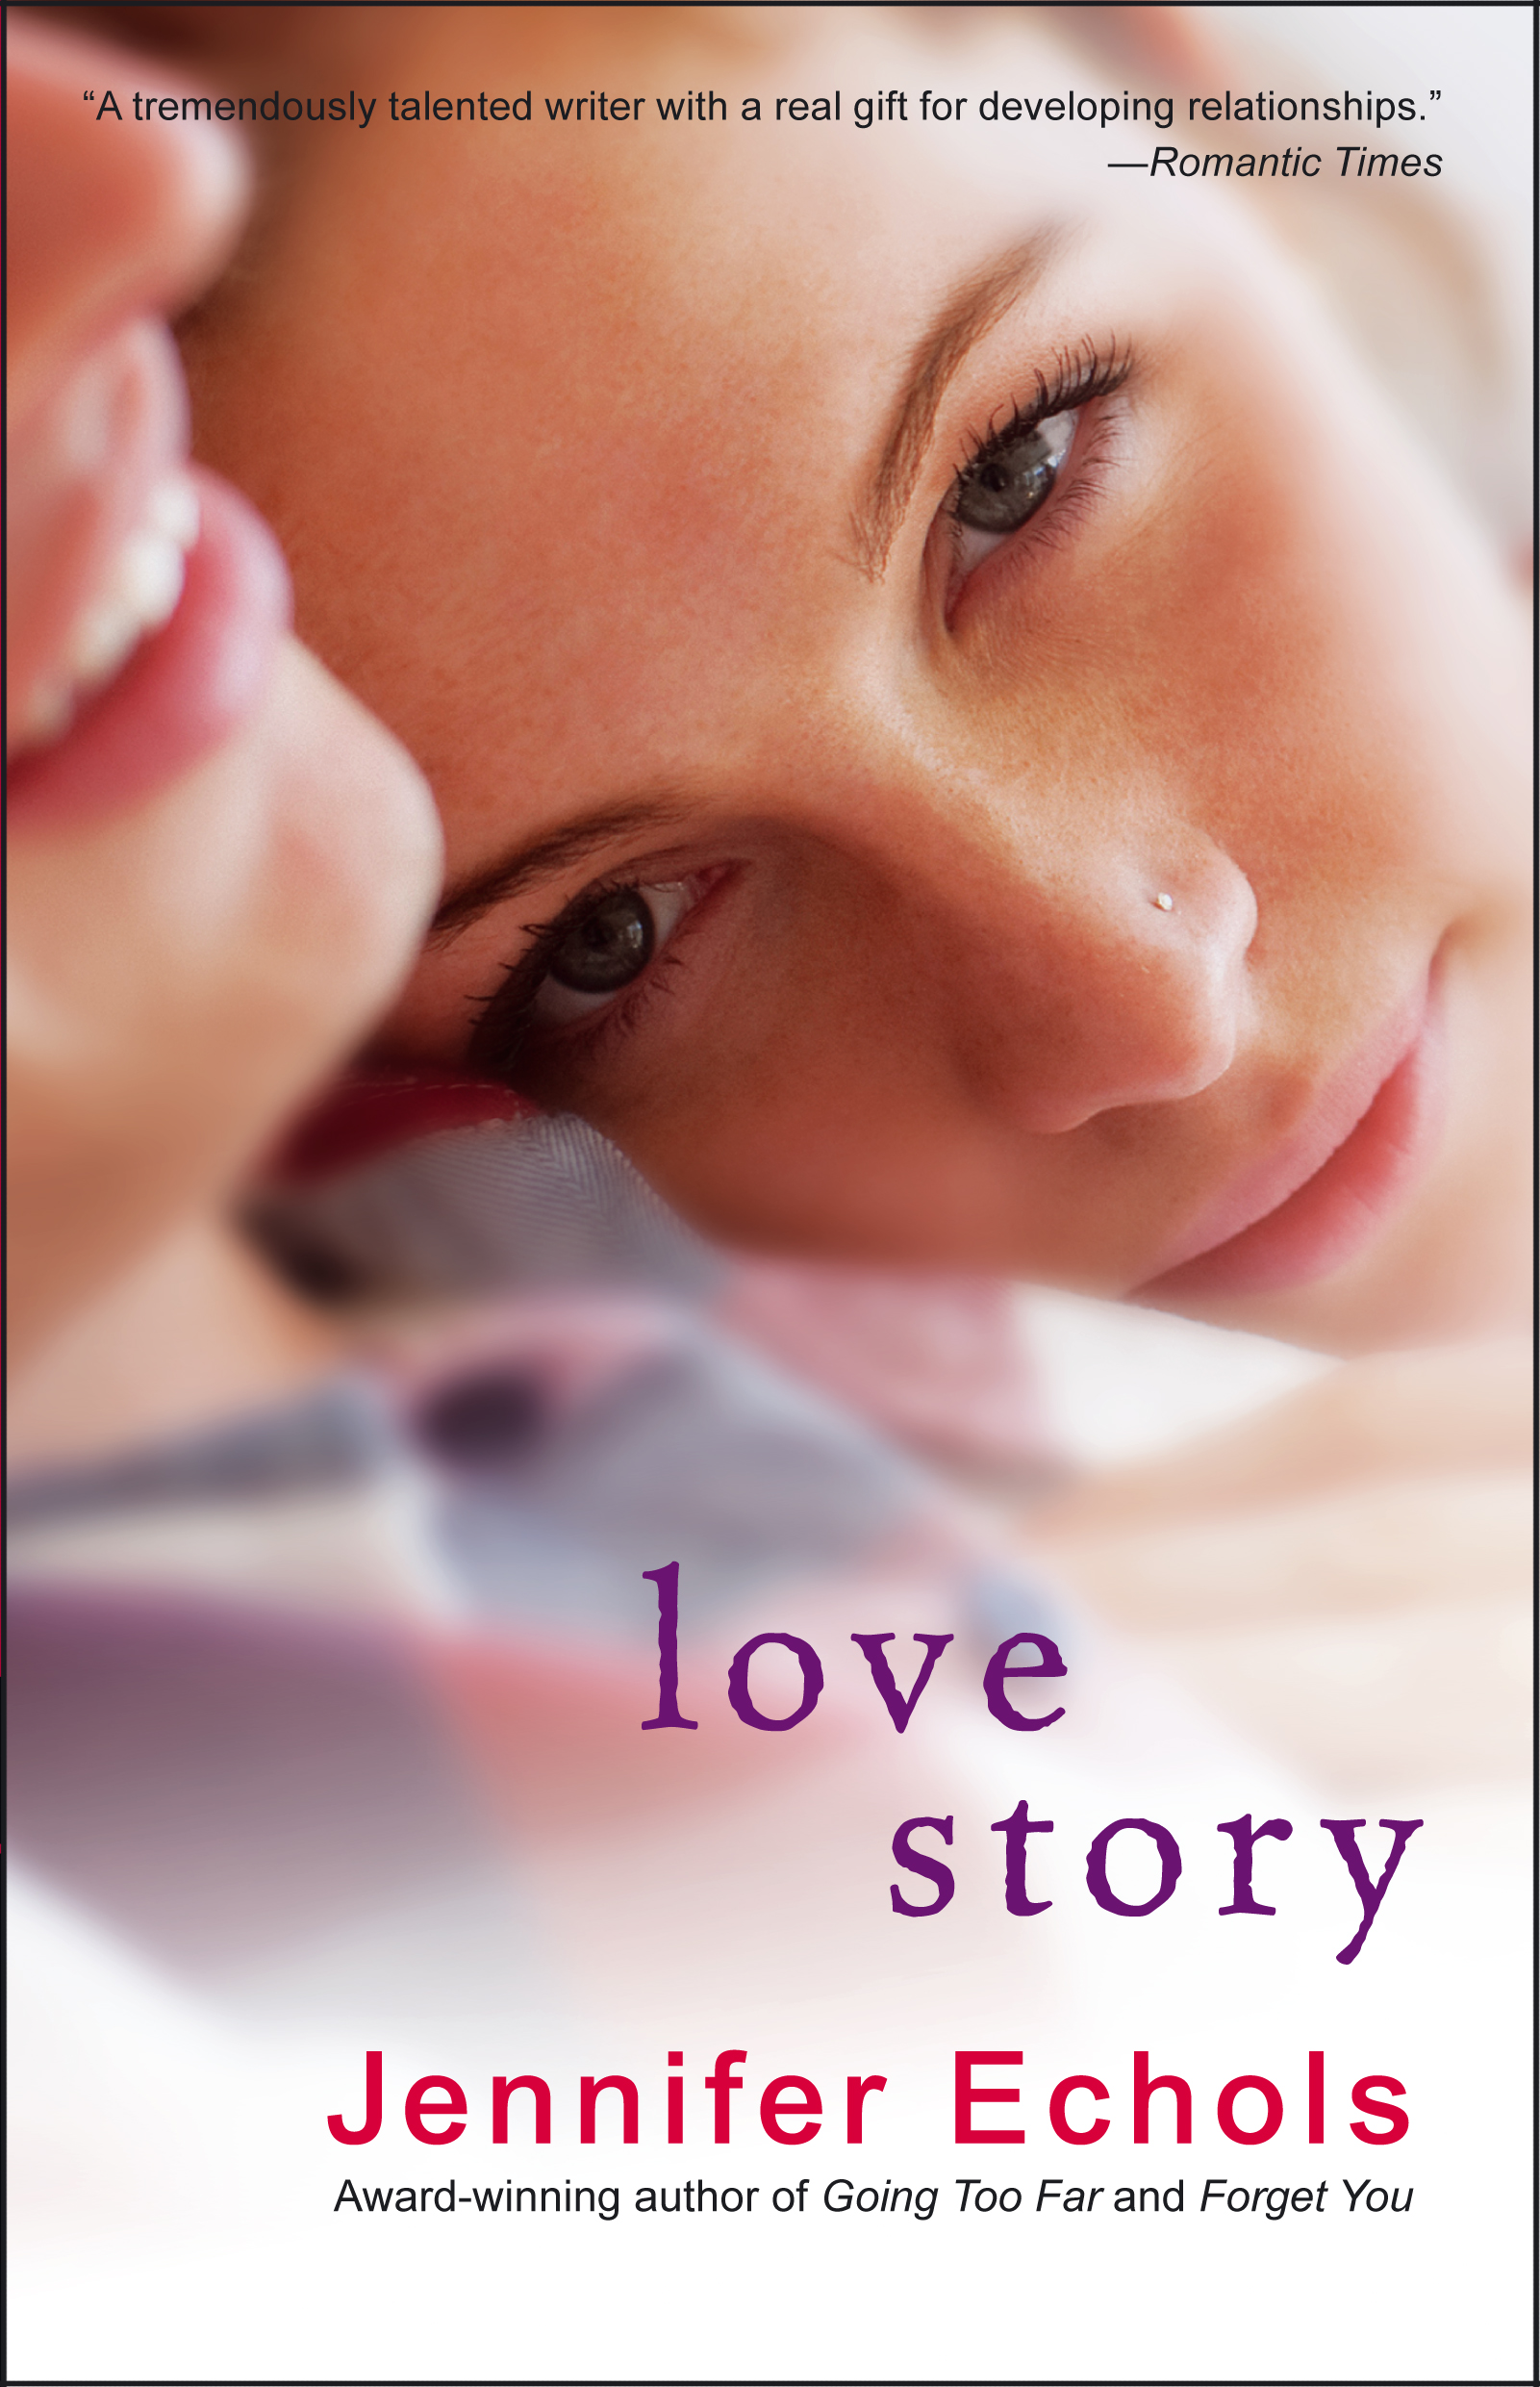 ... 2011; $11.00), a provocative and powerful story of teen romance, ...